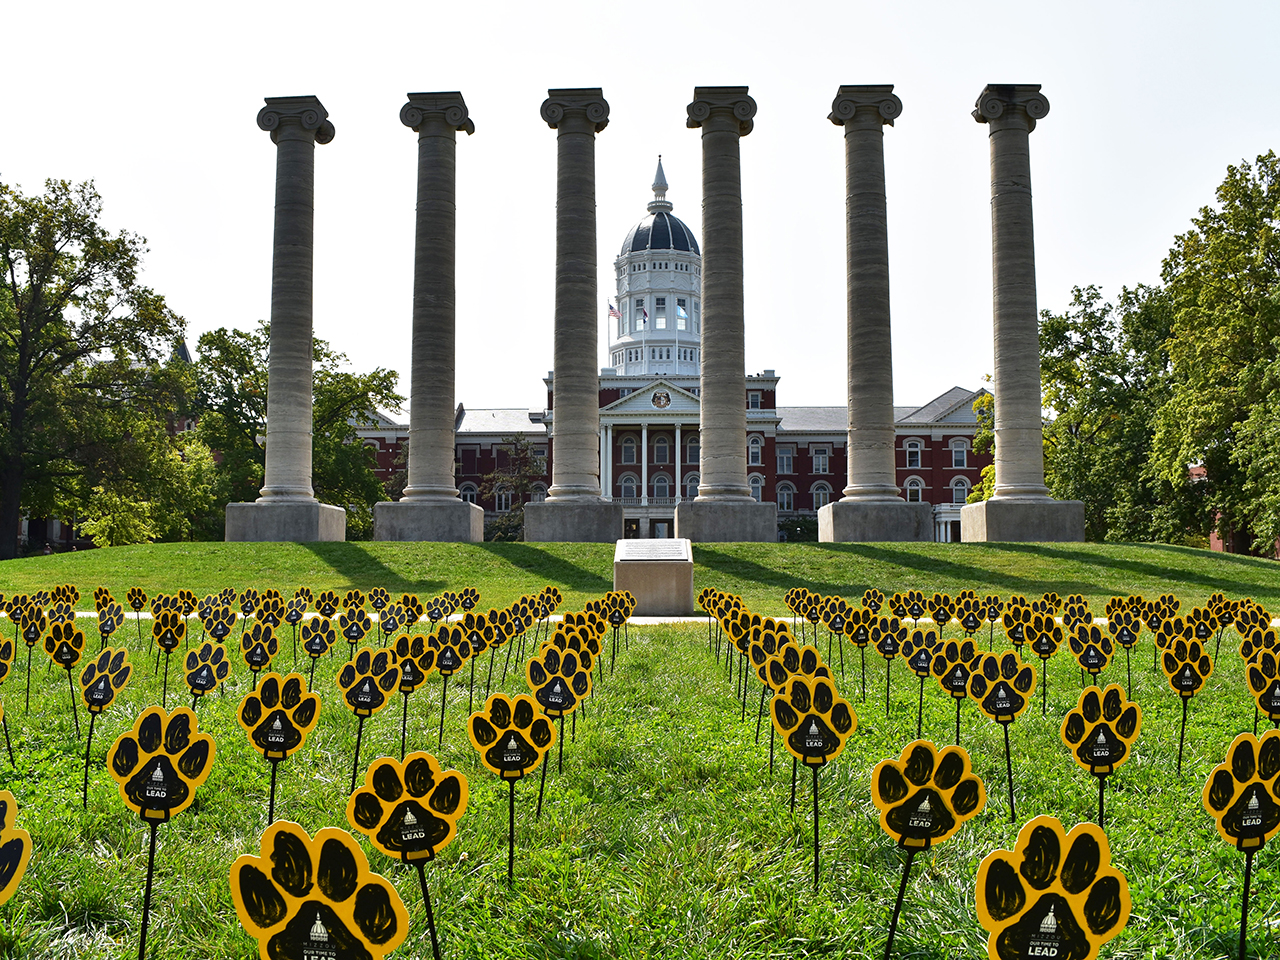 This is an image of Jesse Hall with the six columns and Tiger paws all over the grass, right in front of the columns.